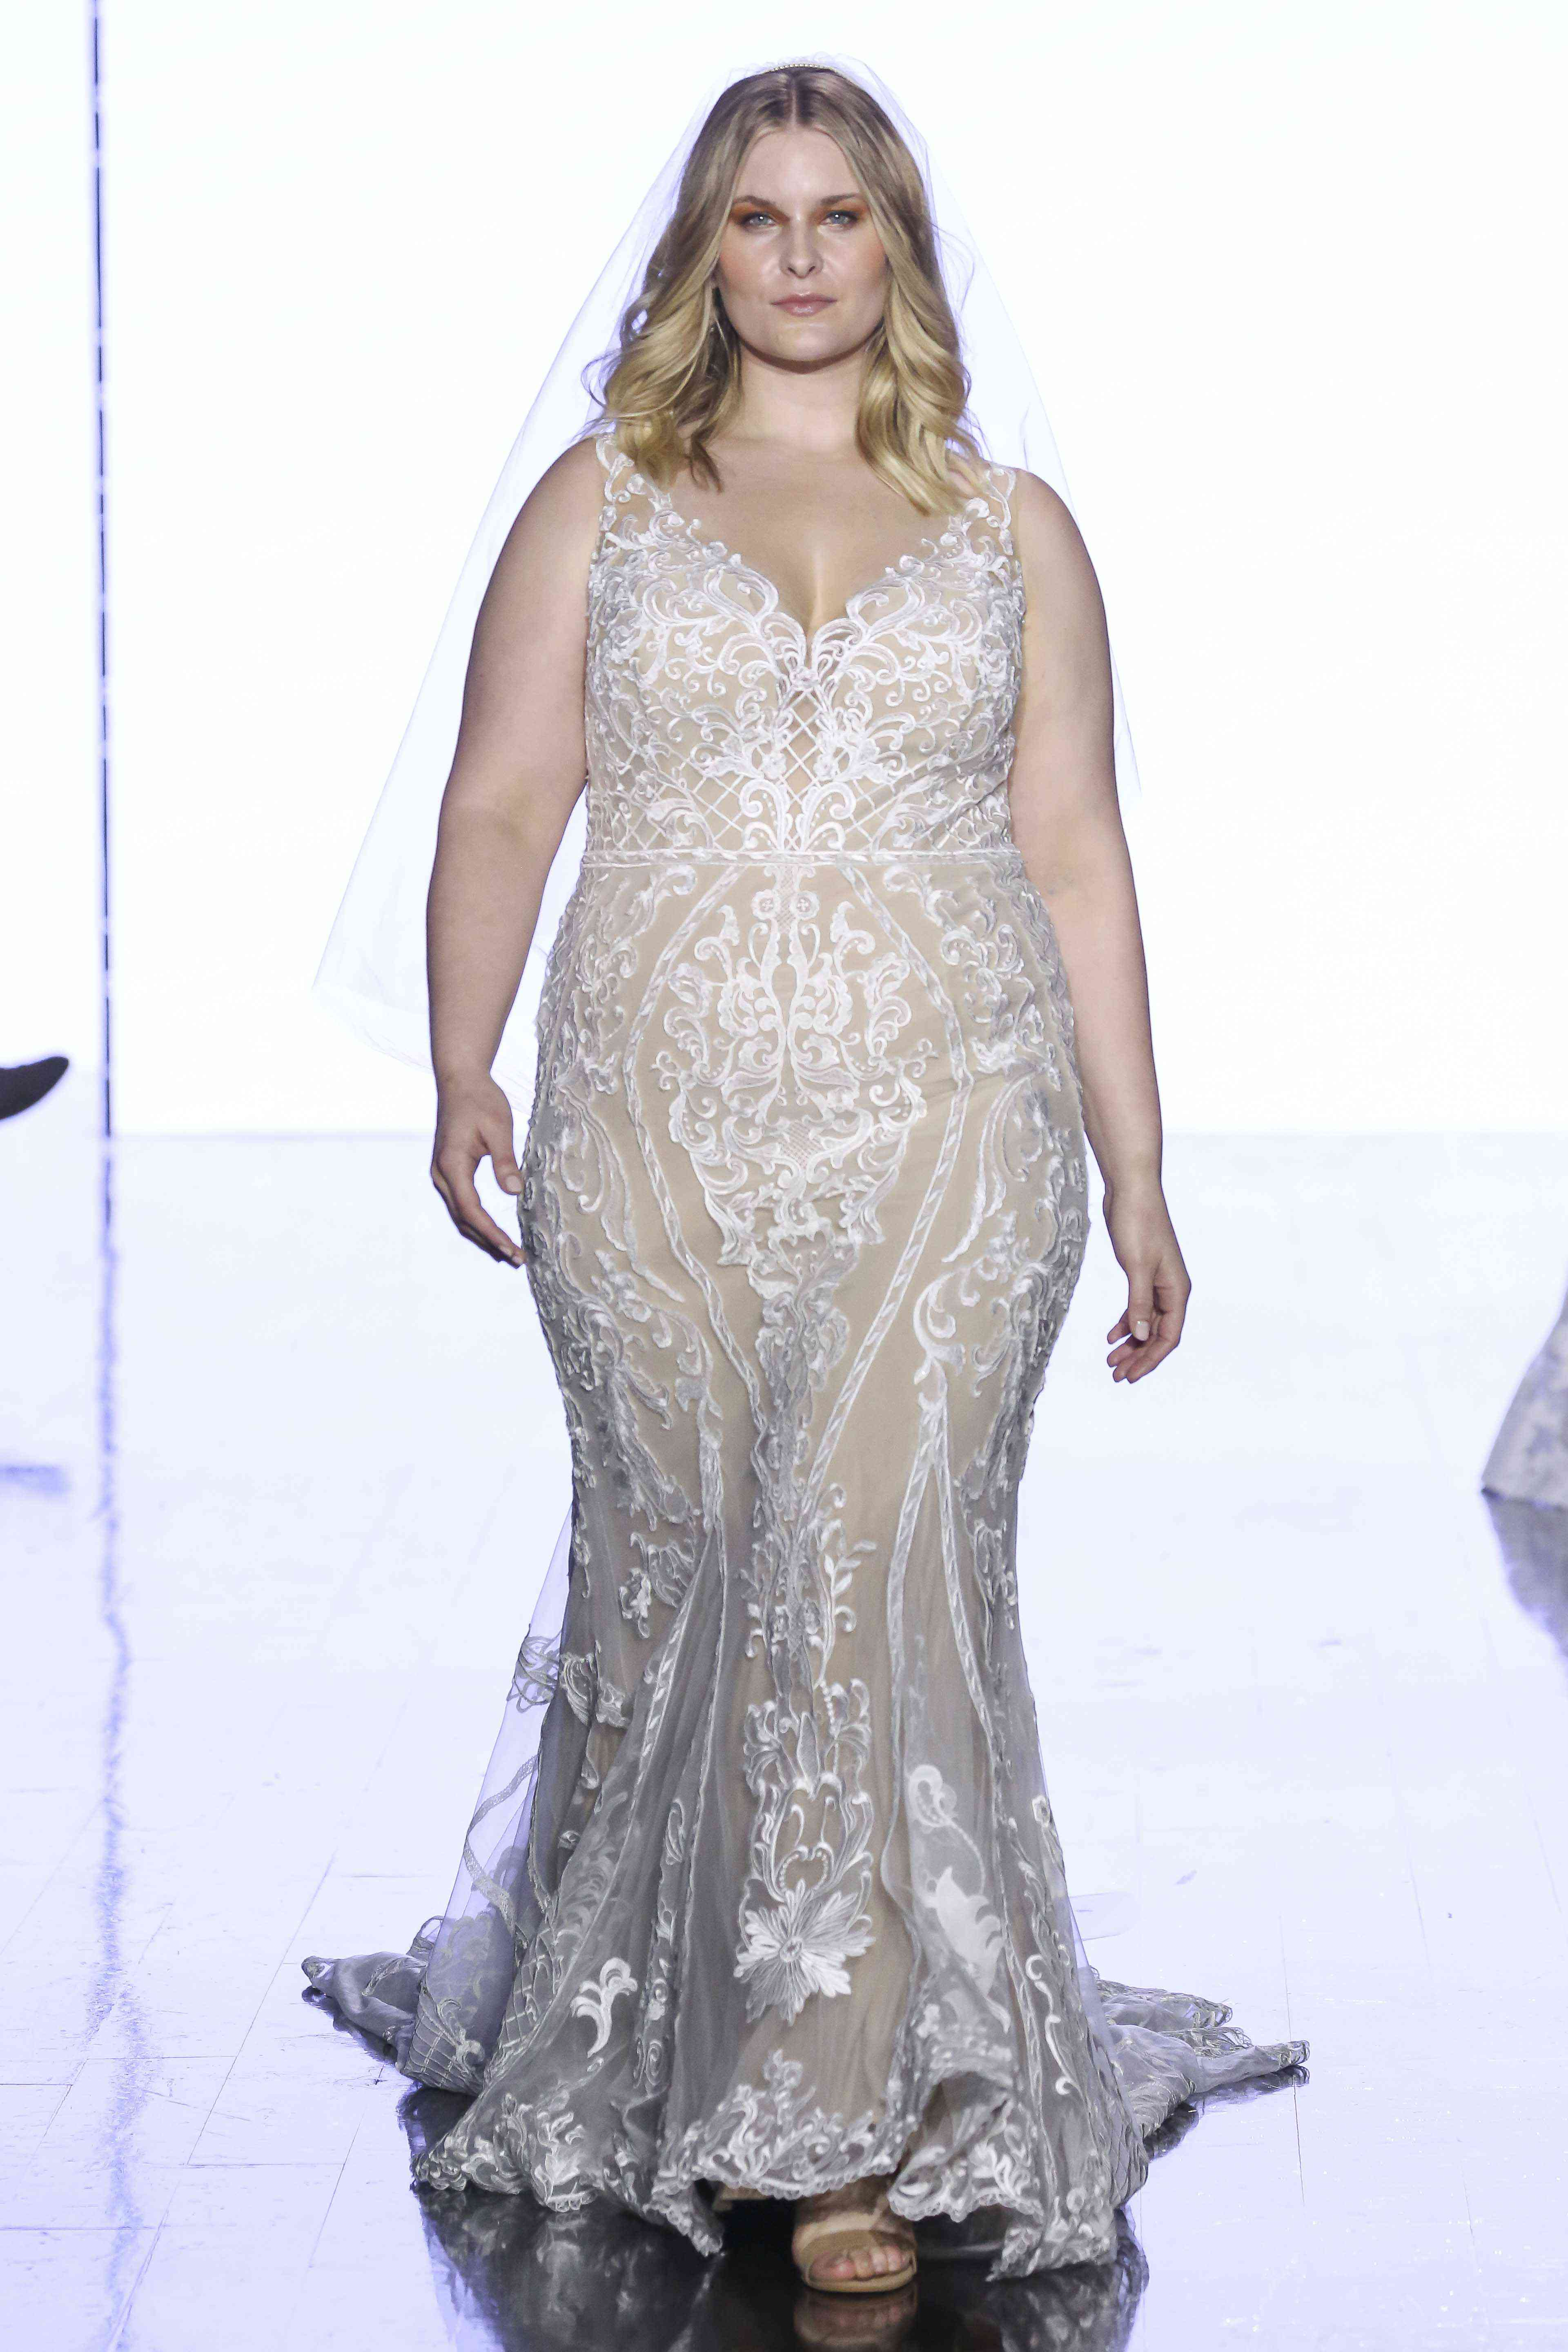 Model in V-neck fit-and-flare allover lace embroidered gown